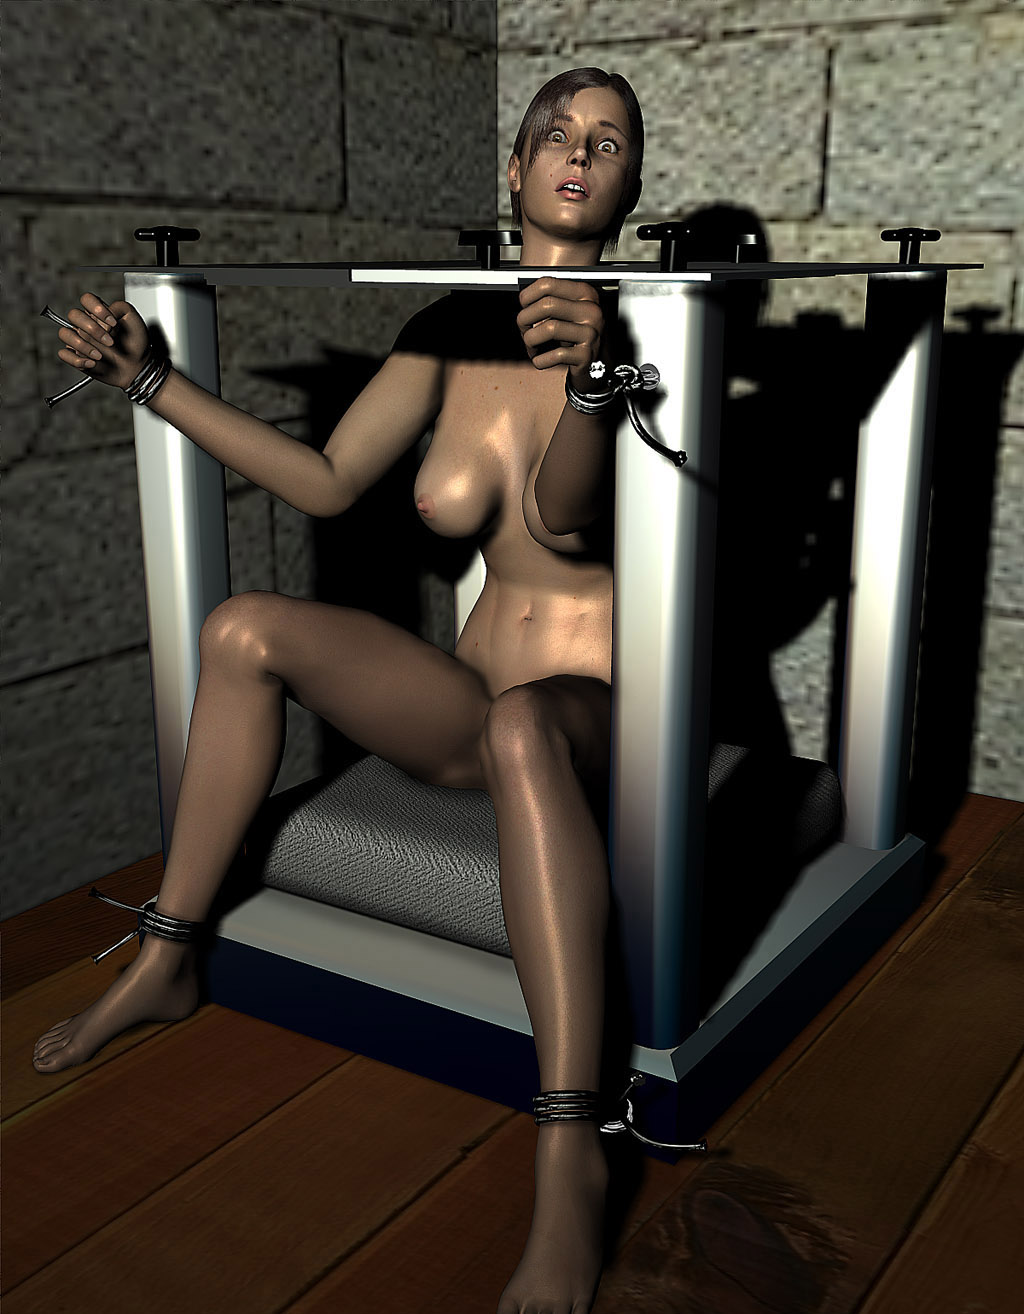 Self bondage suspension e-stim